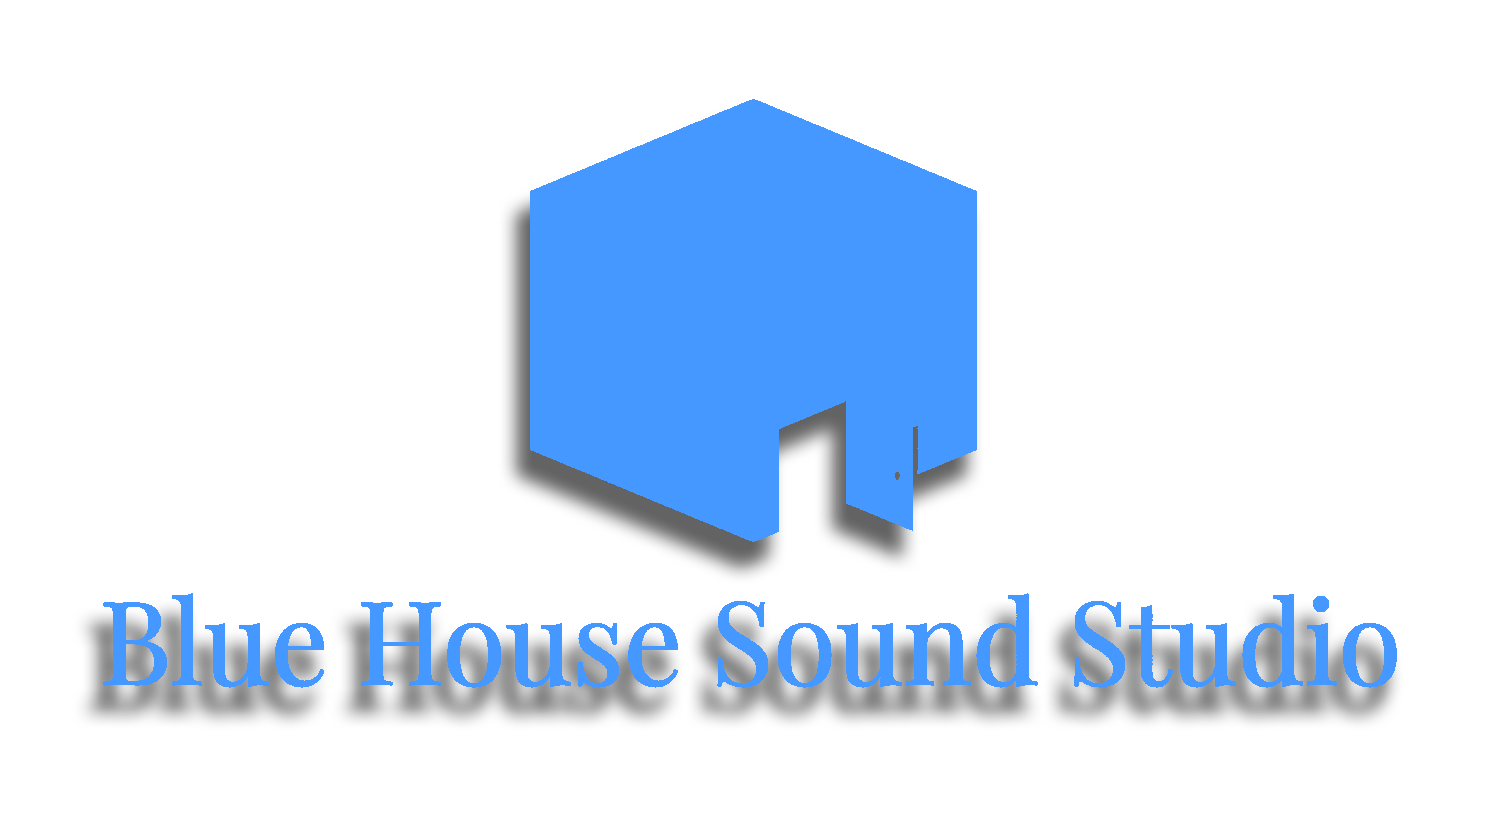 Blue House Sound Studio